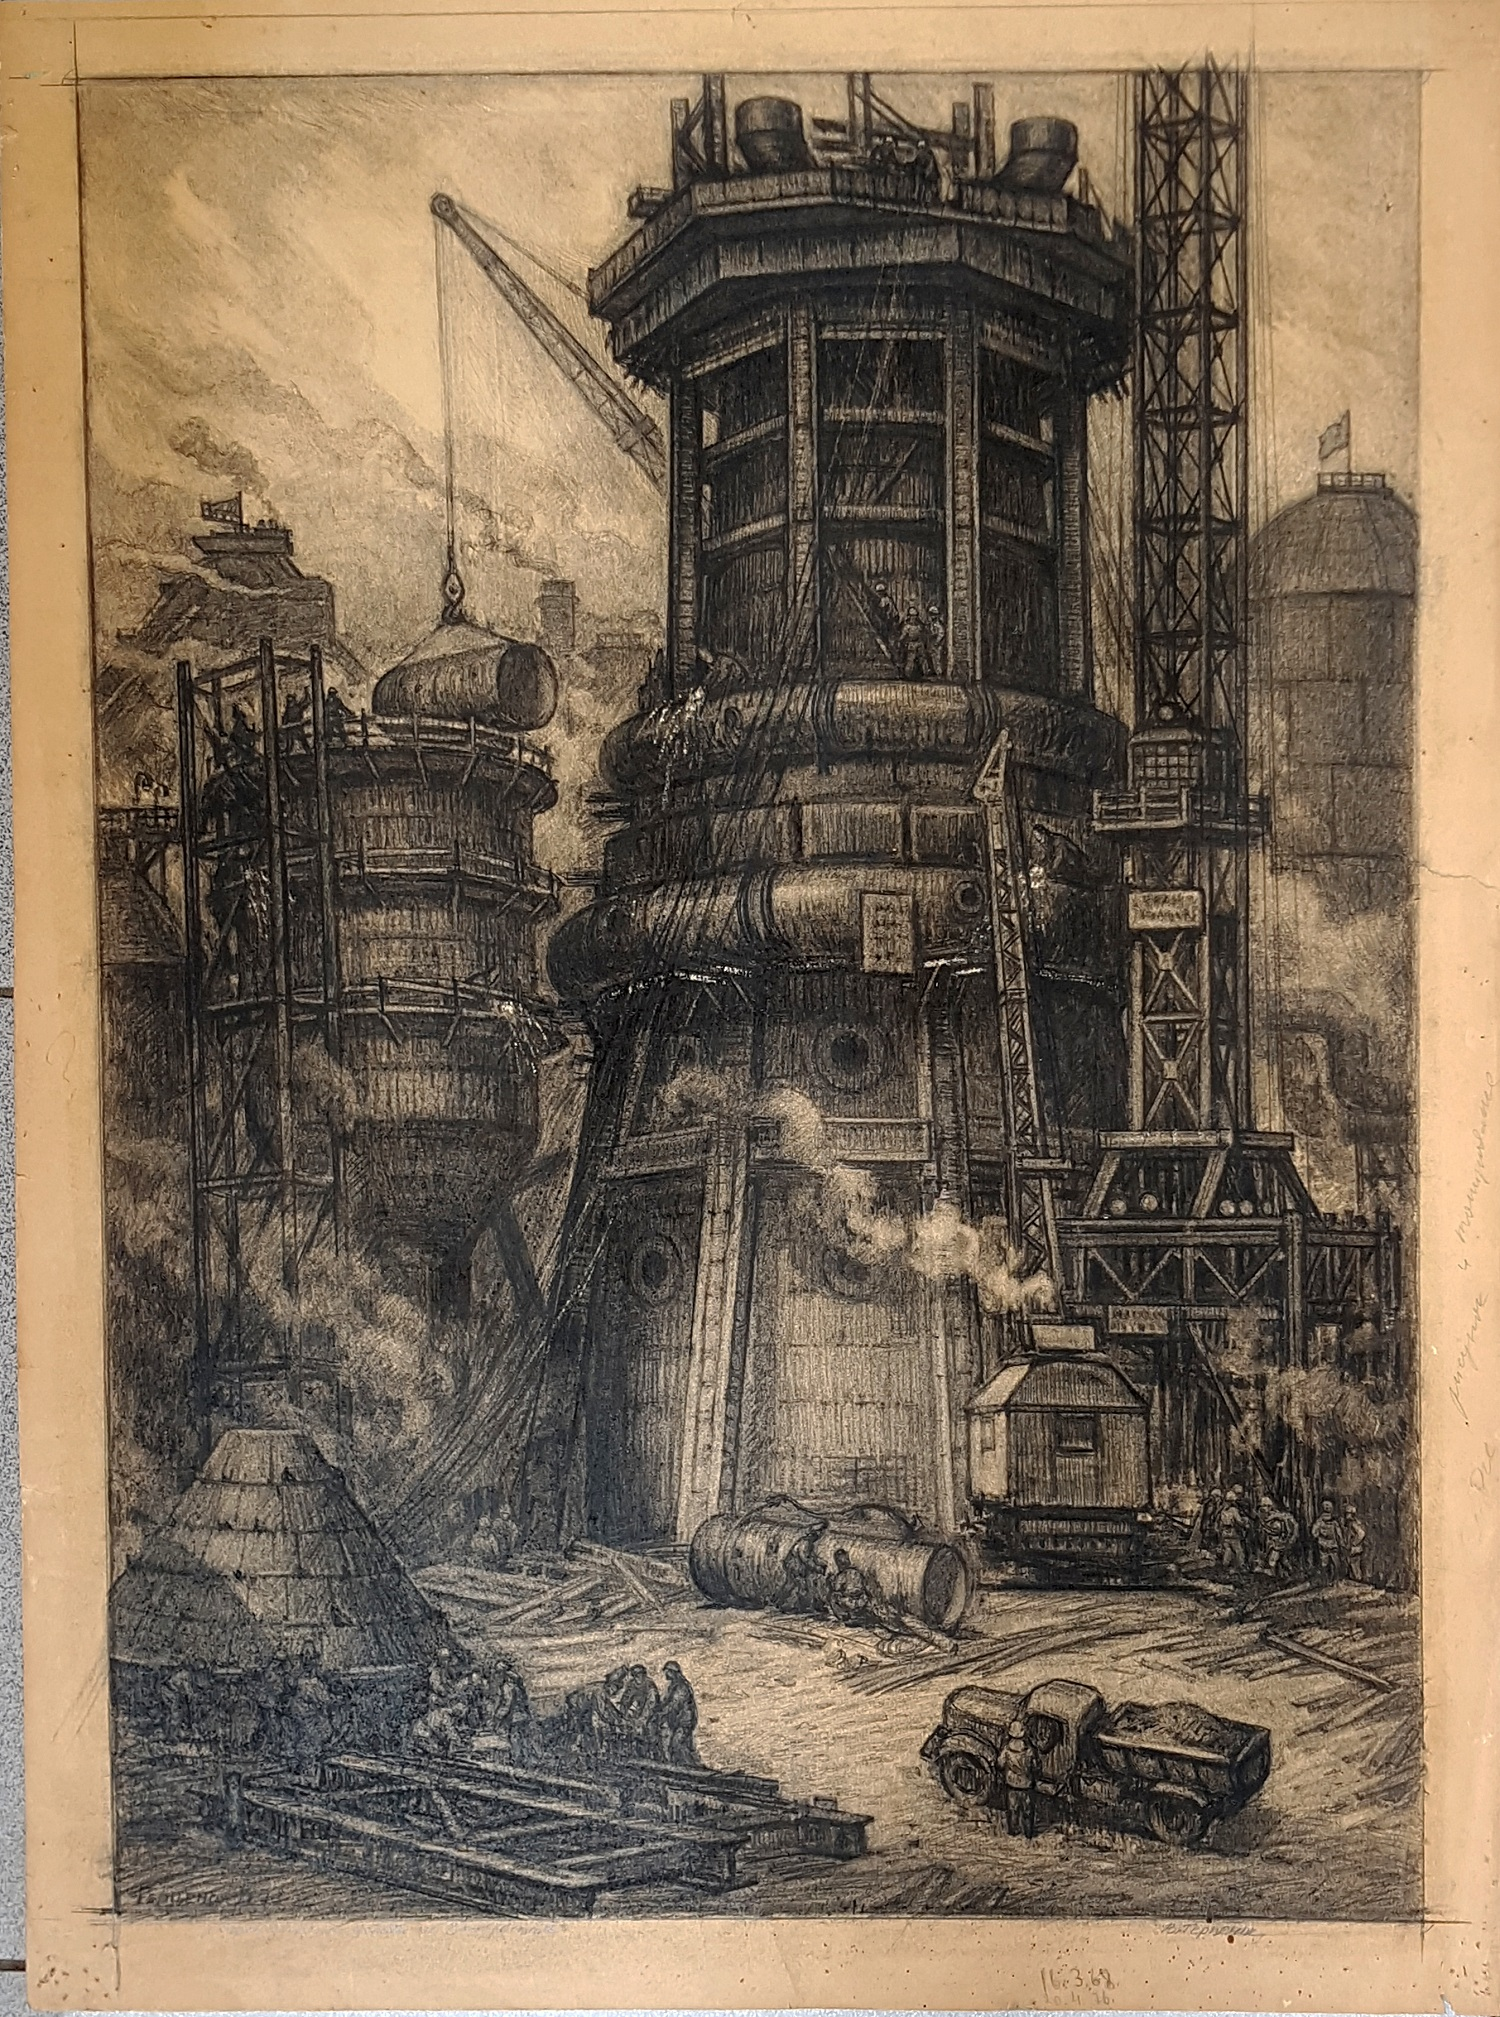 Construction of blast furnace artwork by Viktor Gertsenok - art listed for sale on Artplode